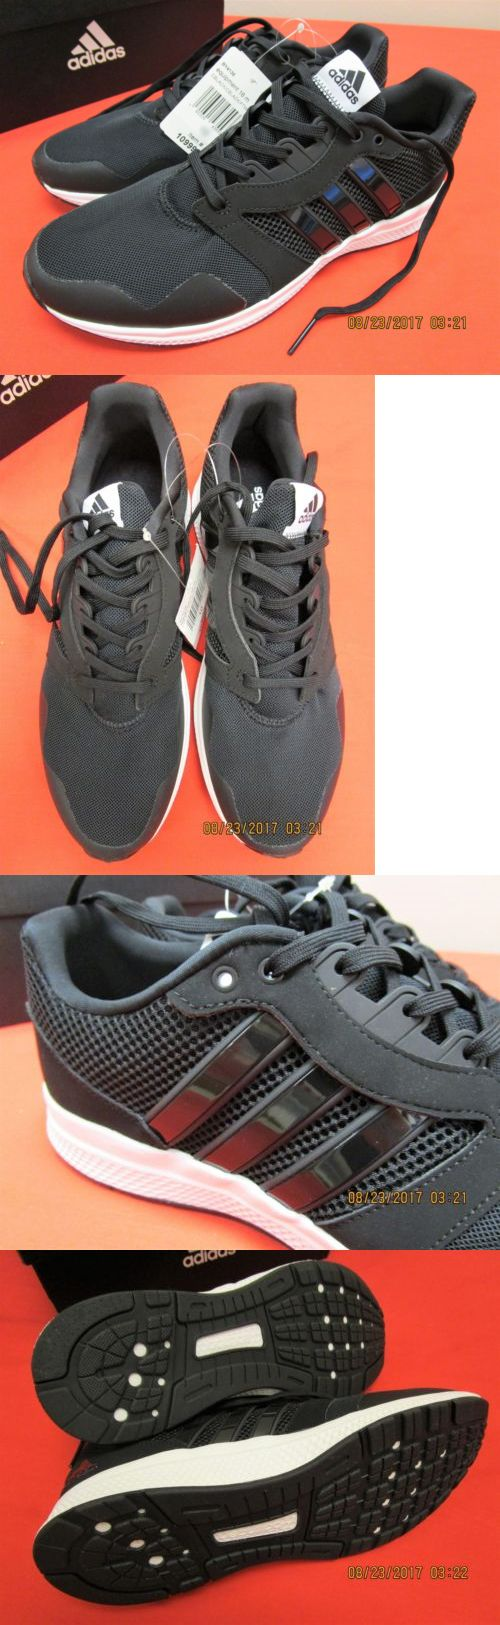 Men Shoes: Men S Adidas Equipment 16 M Black Running Shoes Size 8 -> BUY IT NOW ONLY: $32 on eBay!